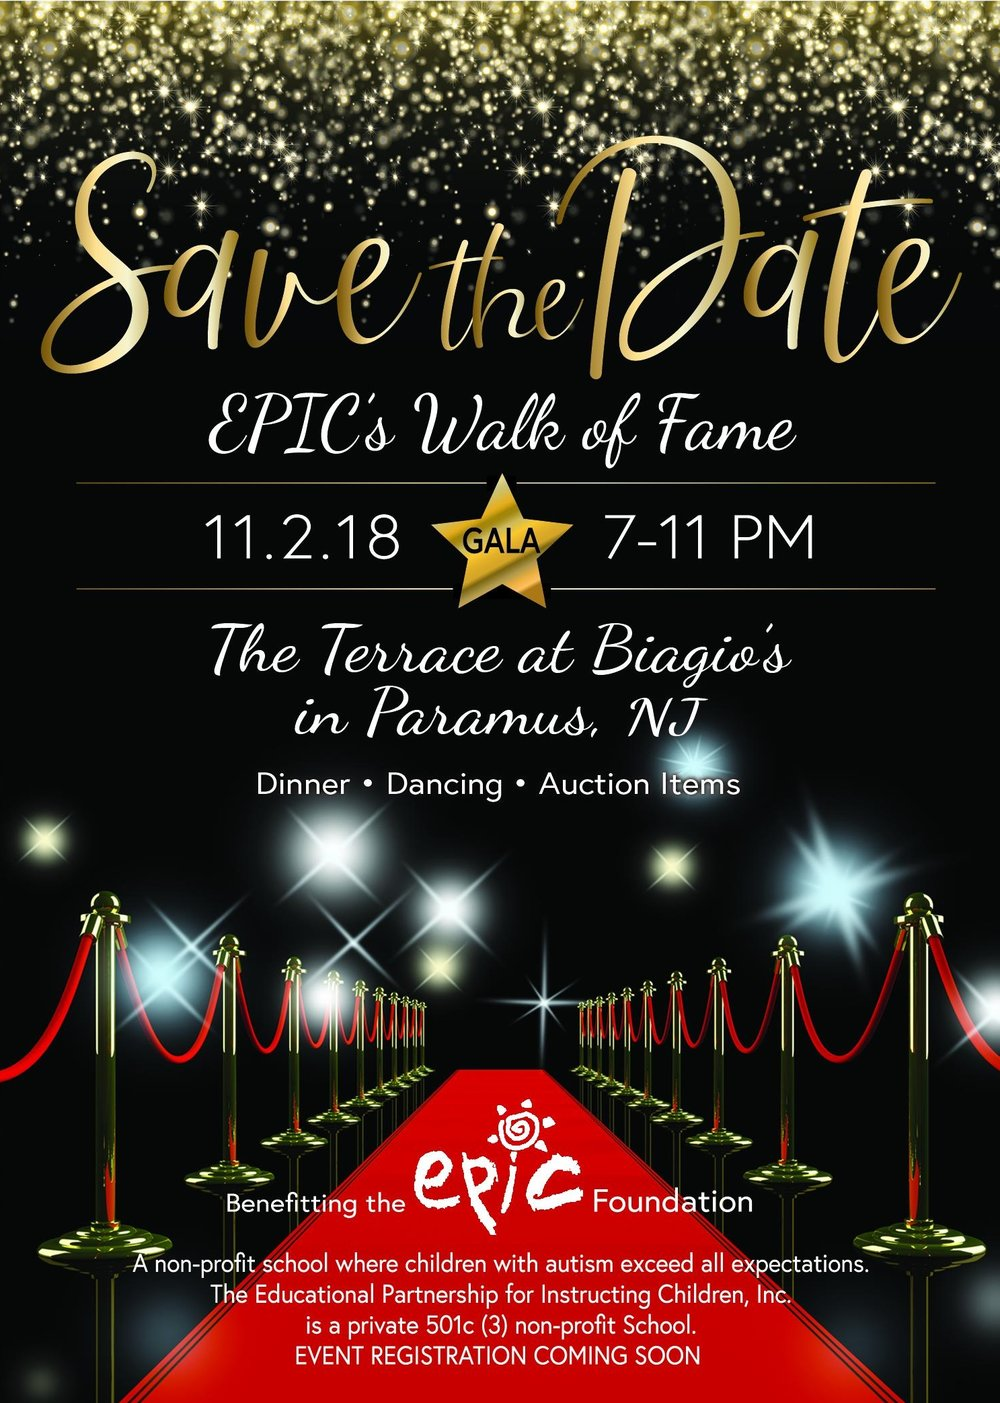 epic school save the date2.jpg